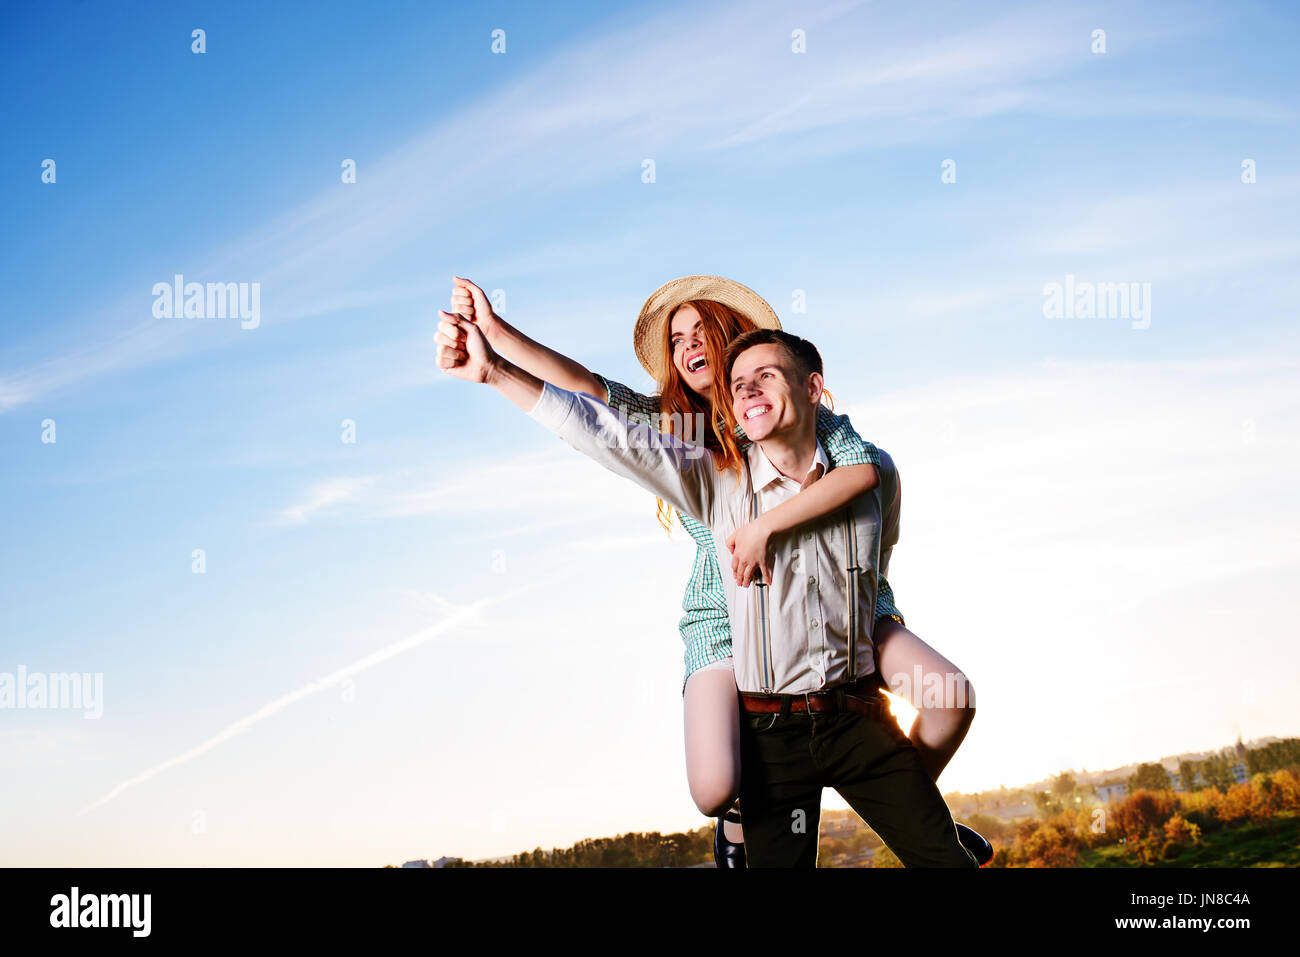 Young man piggybacking his happy girlfriend with raised hand. Cheerful lovers dreaming. - Stock Image